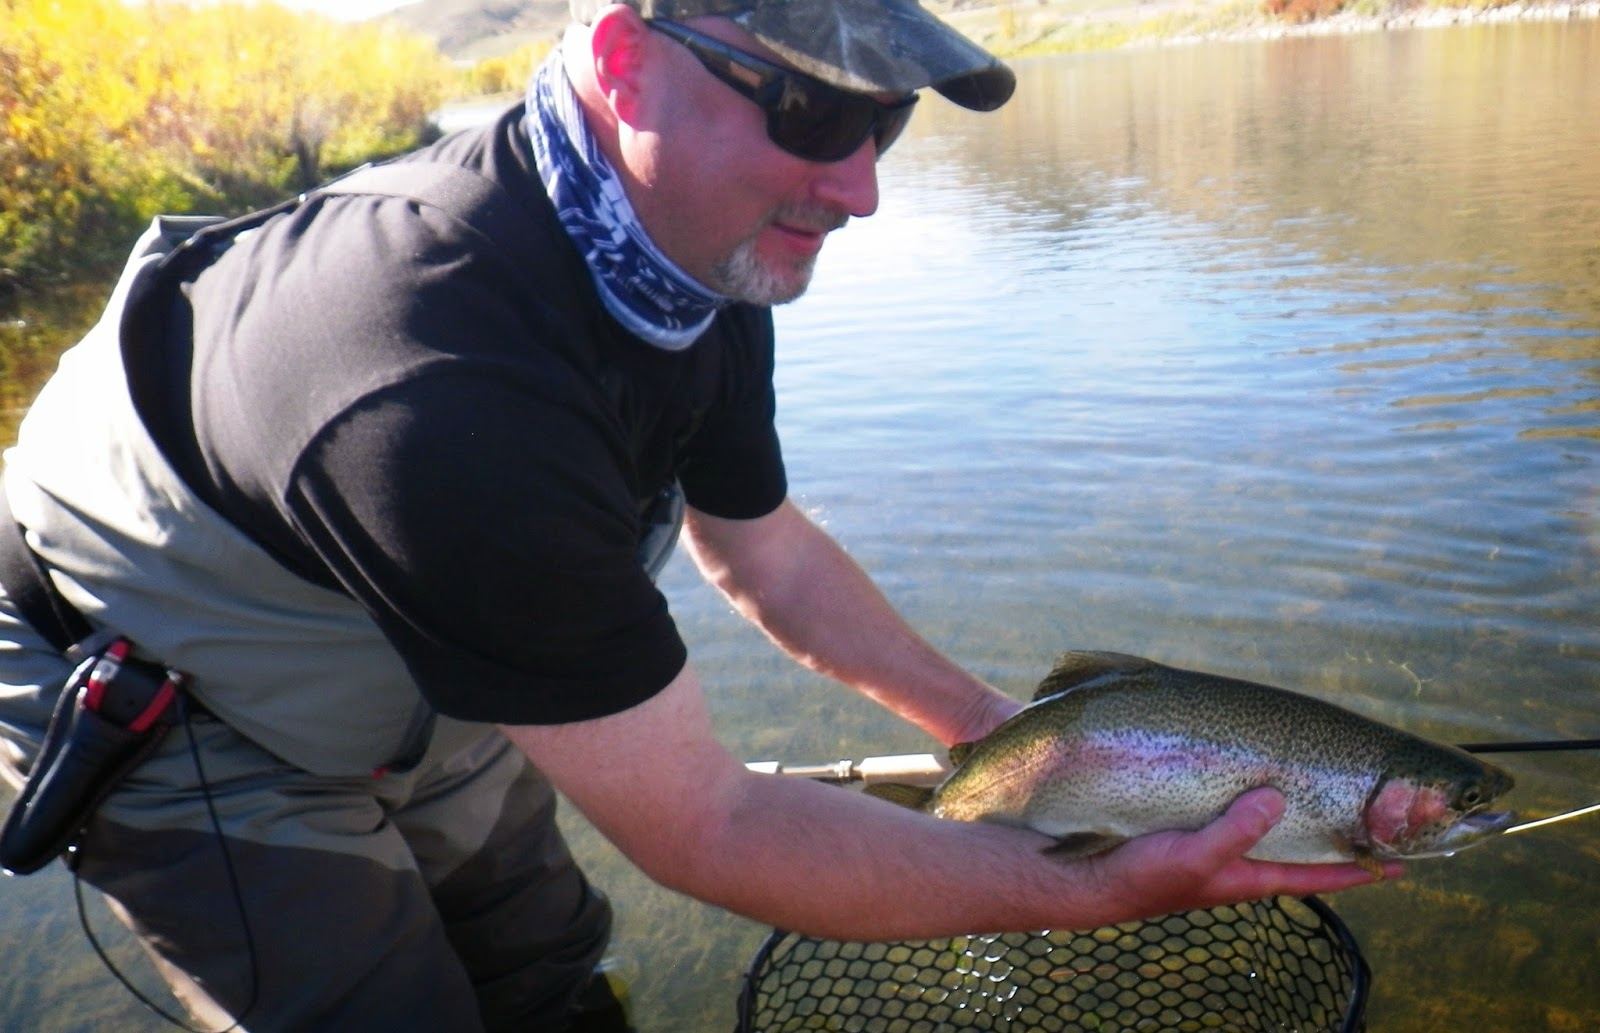 Montana: Missouri River - Fly Fishing with MicroSpey - Greg Darling